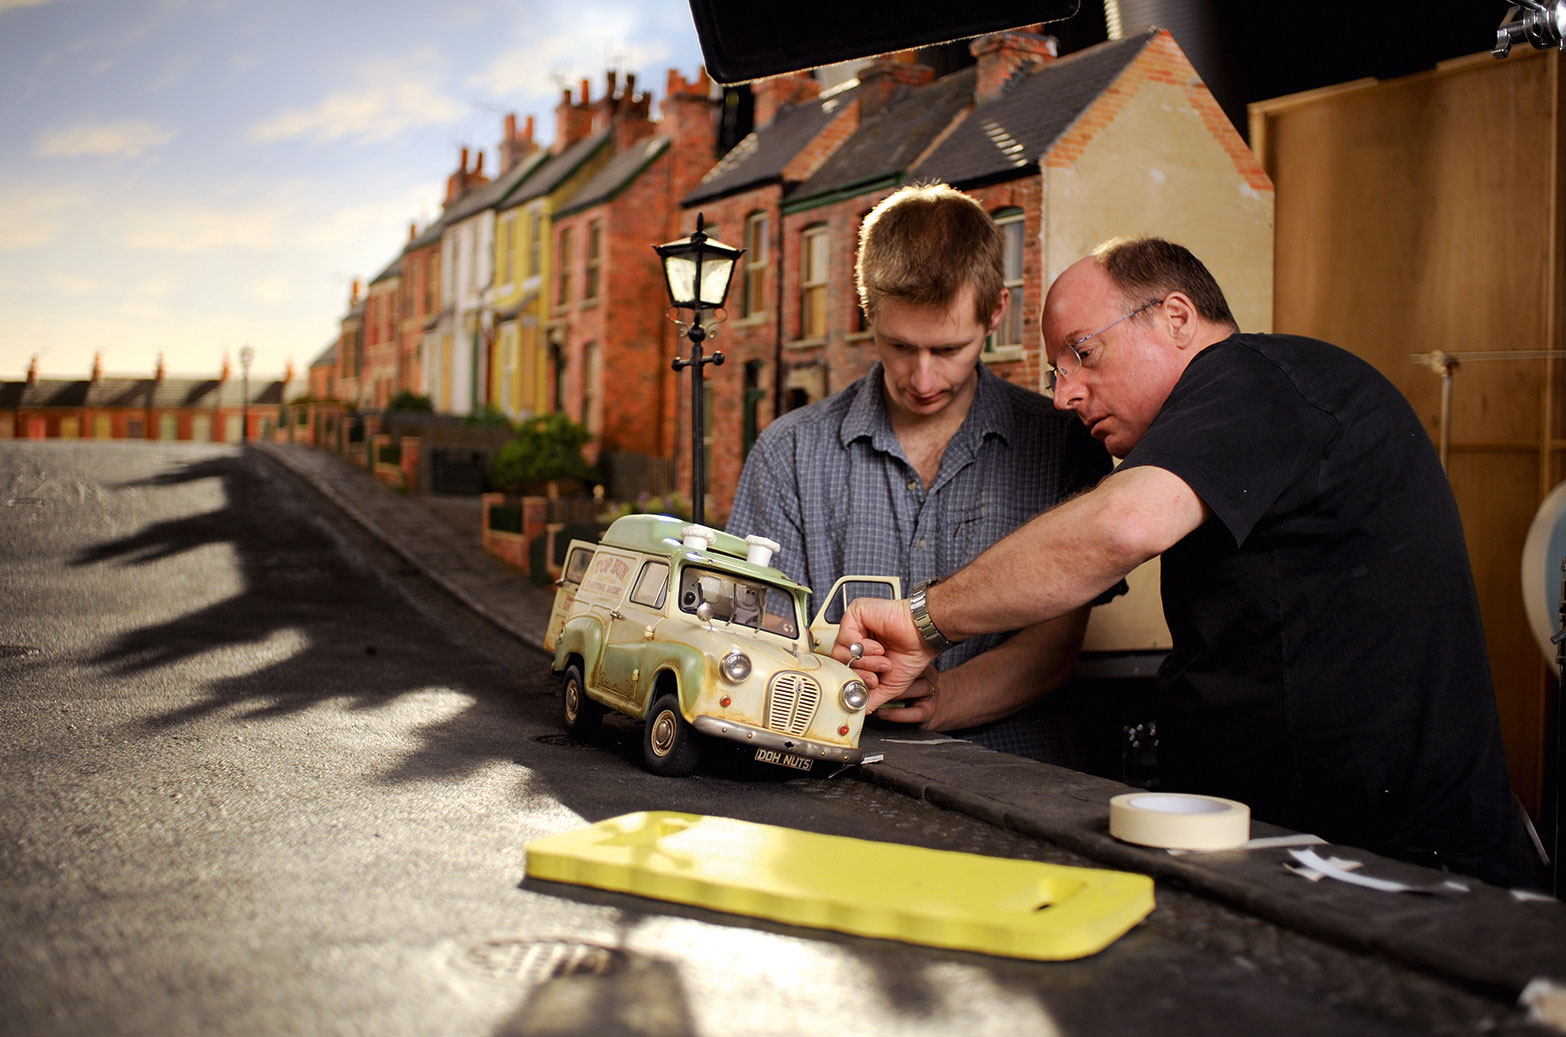 Two workers building a model van on a model road